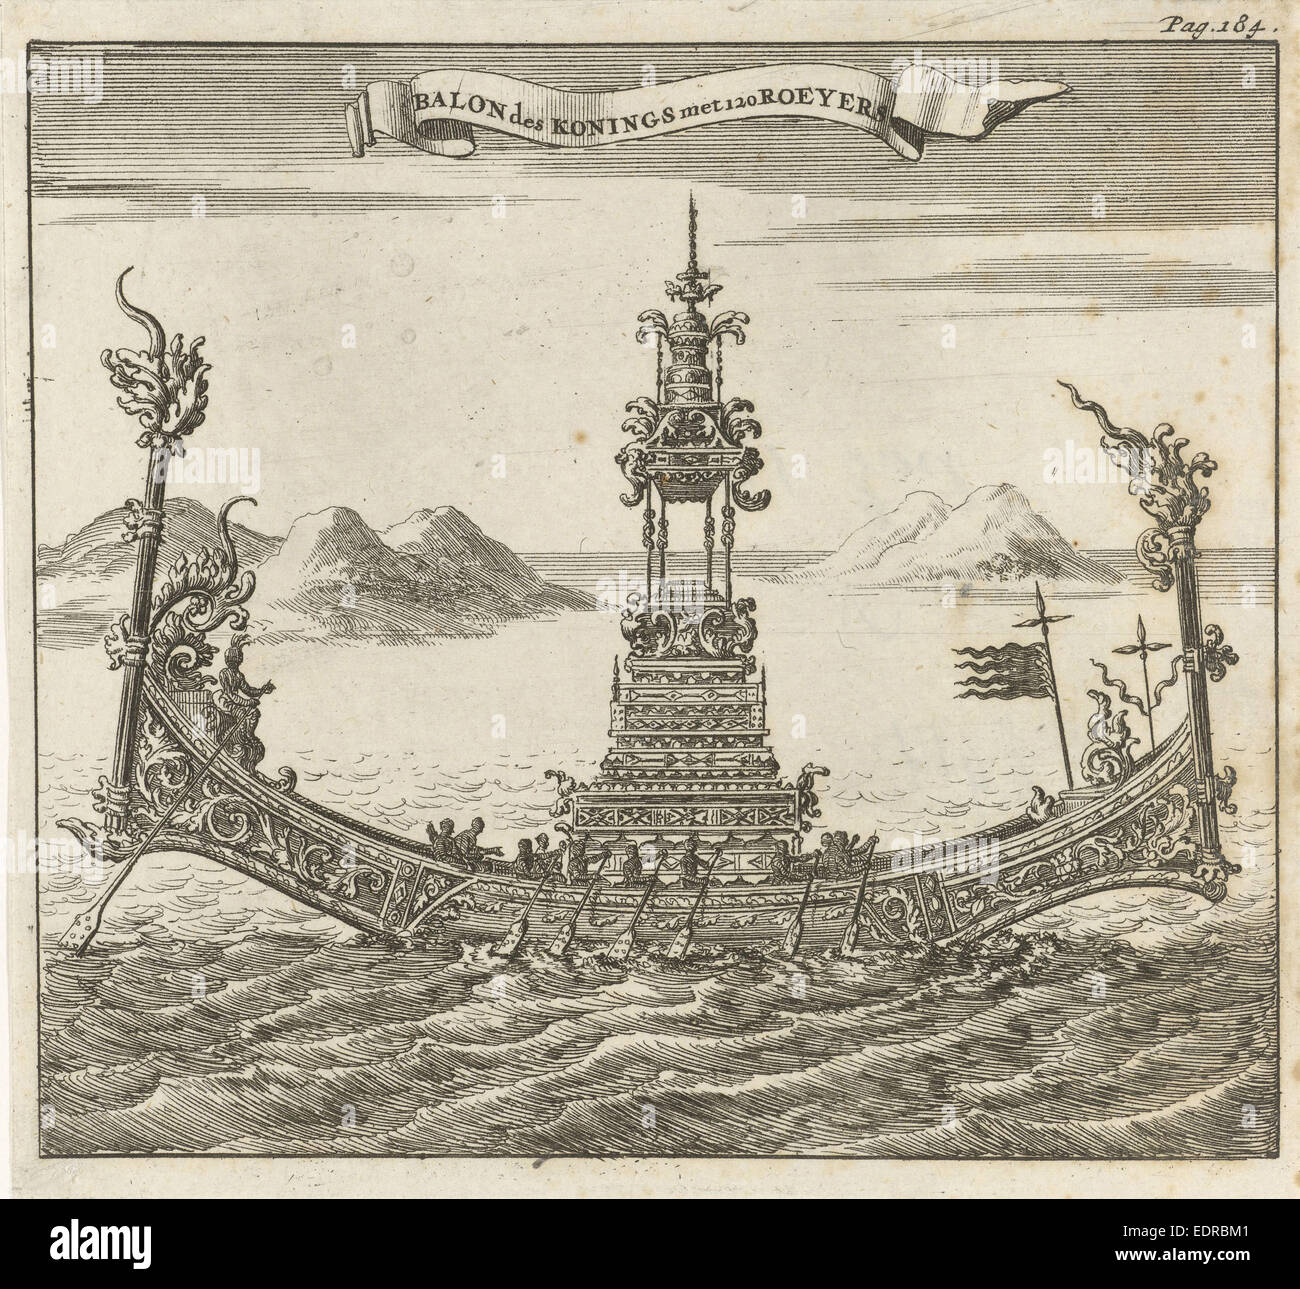 Royal vessel with 120 rowers to Siam, Thailand, Jan Luyken, Aart Dircksz Oossaan, 1687 - Stock Image